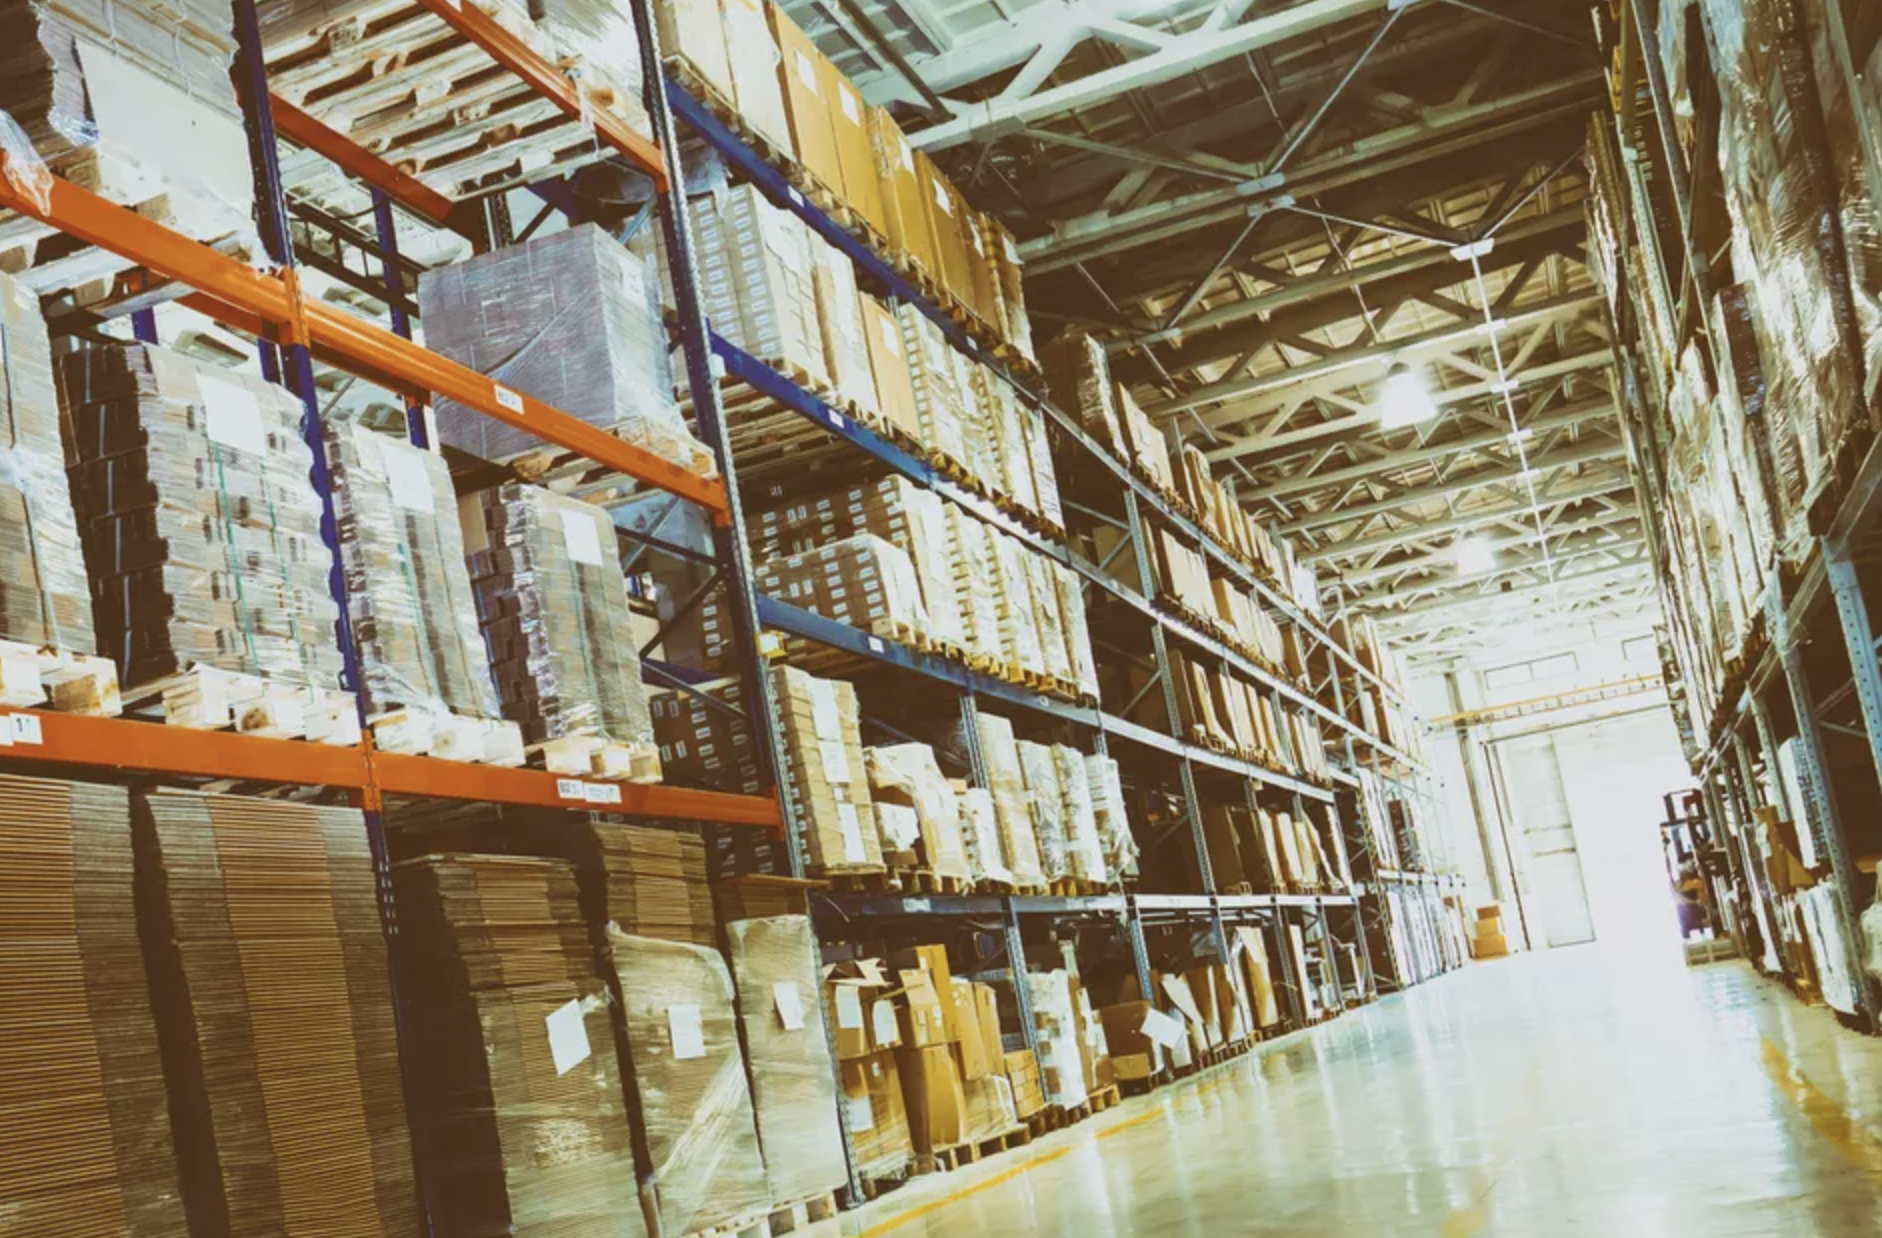 Logos acquired a 4.4-hectare warehouse site in Sydney's south for $72.4 million in an off-market sale last year.